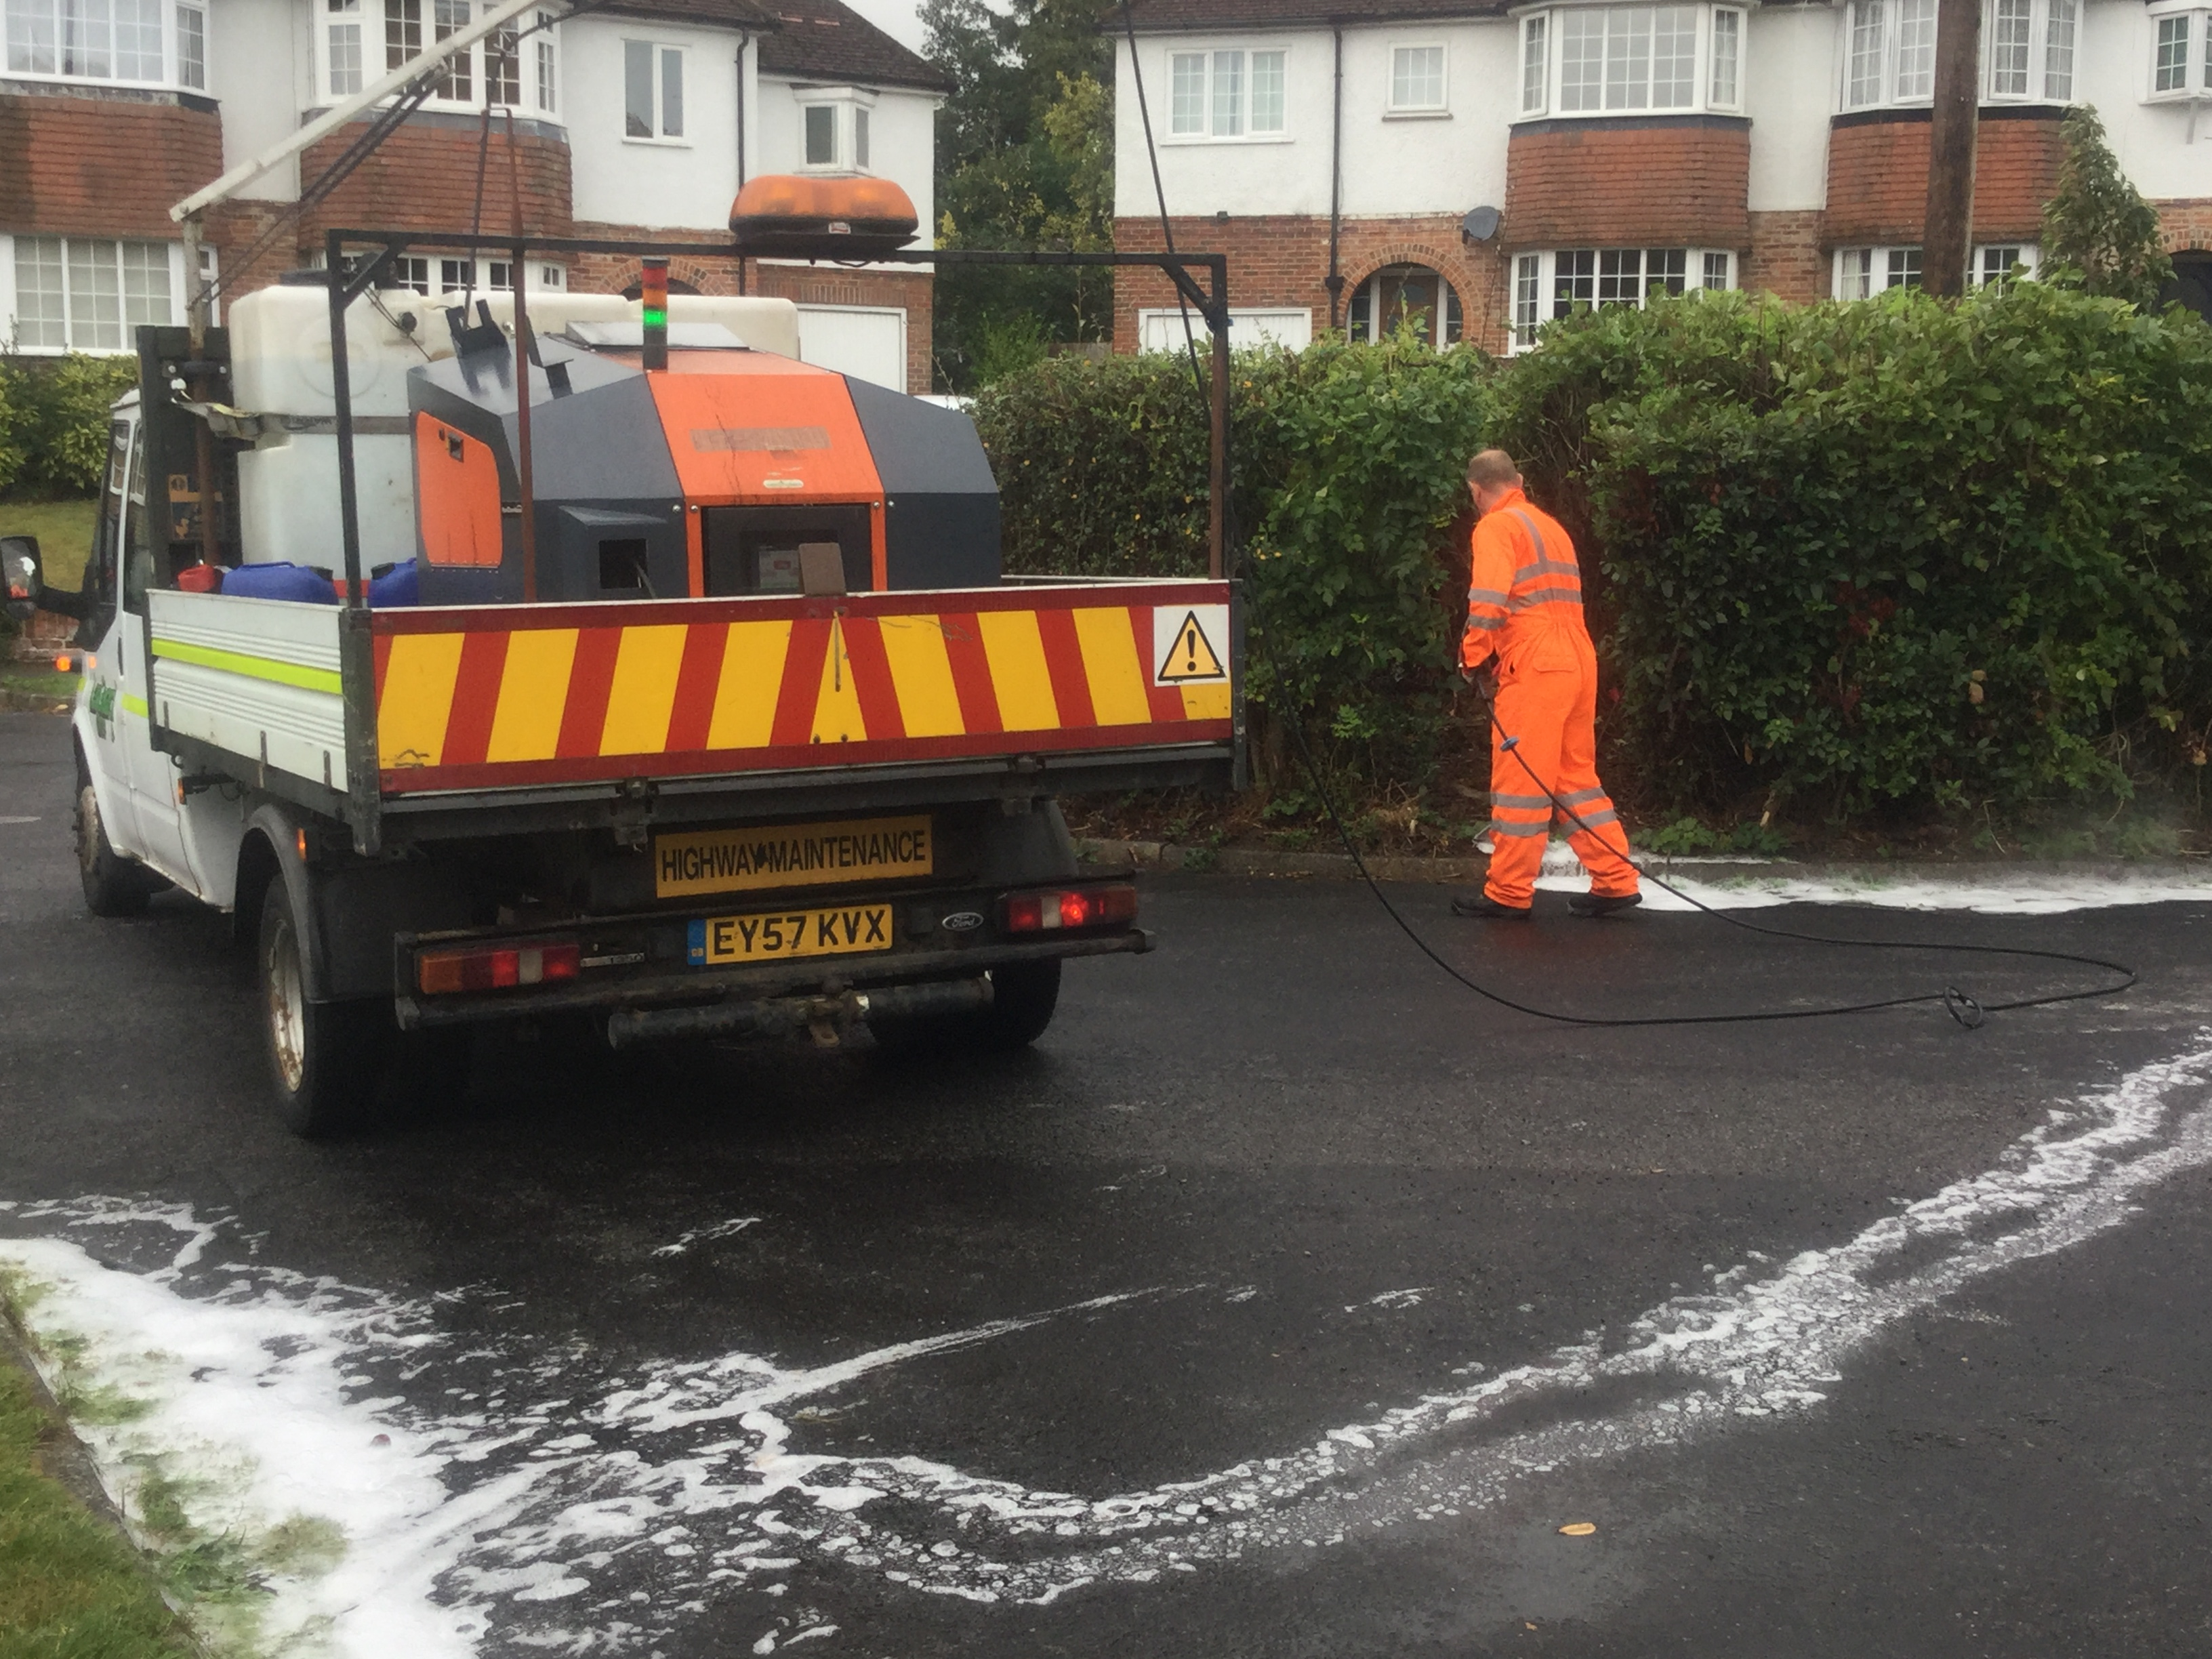 'Hot foam' trial on highways weed control